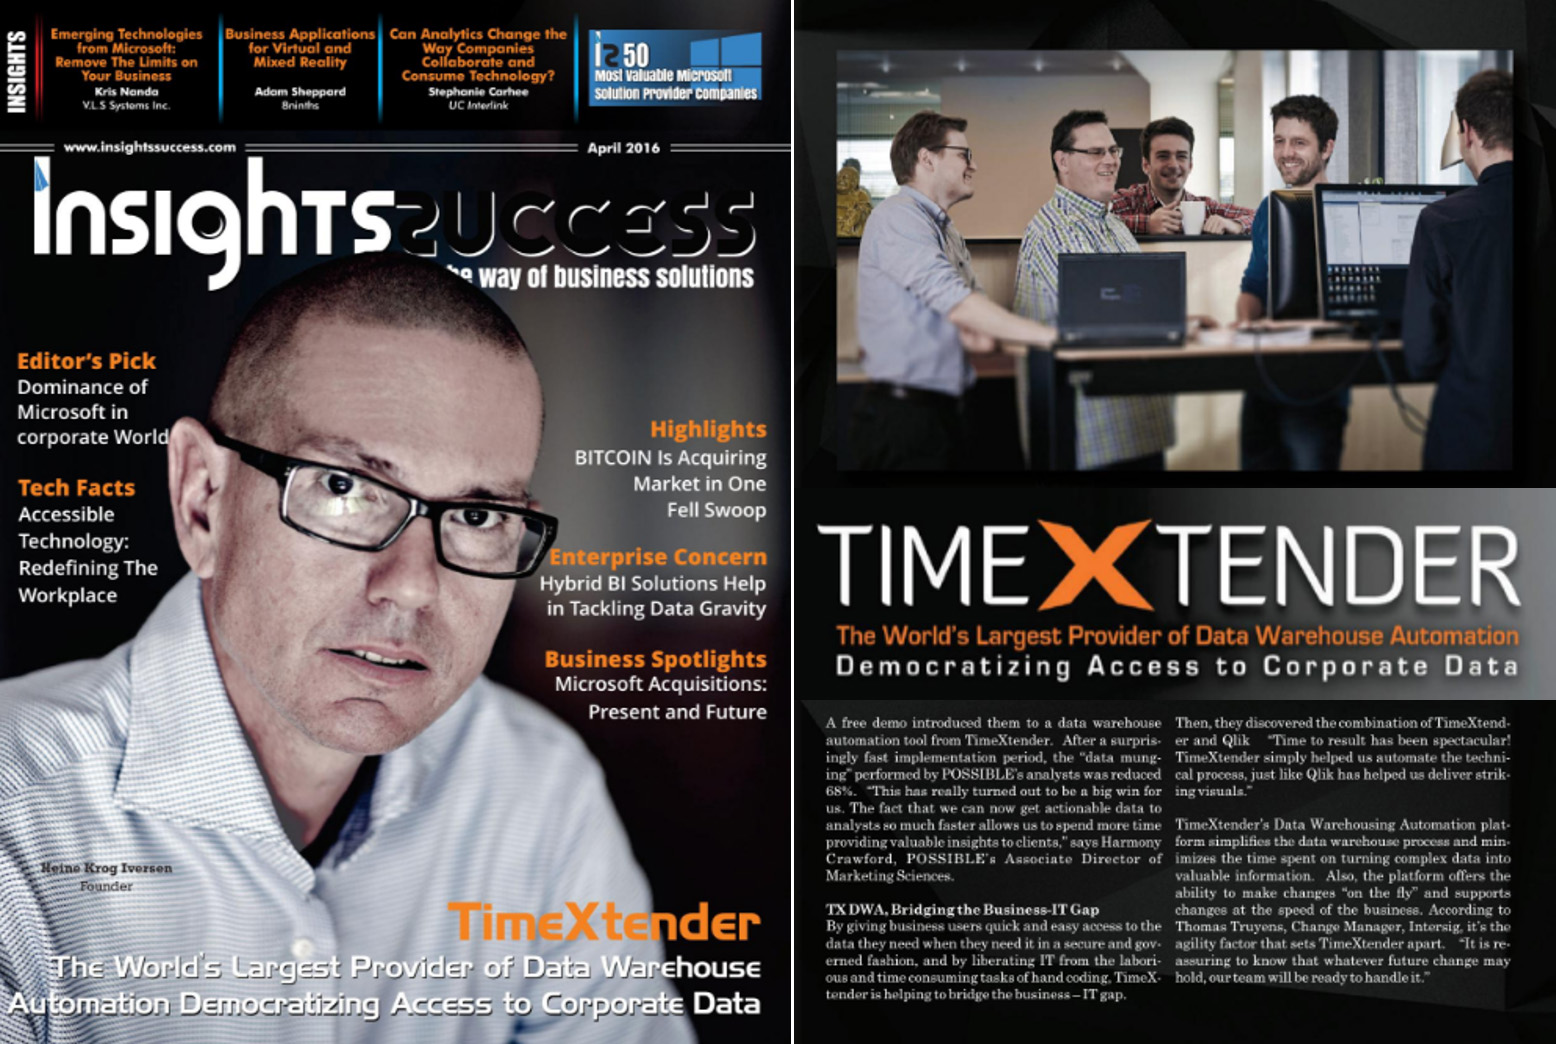 Heine_on_the_cover_of_Insights_Success.jpg